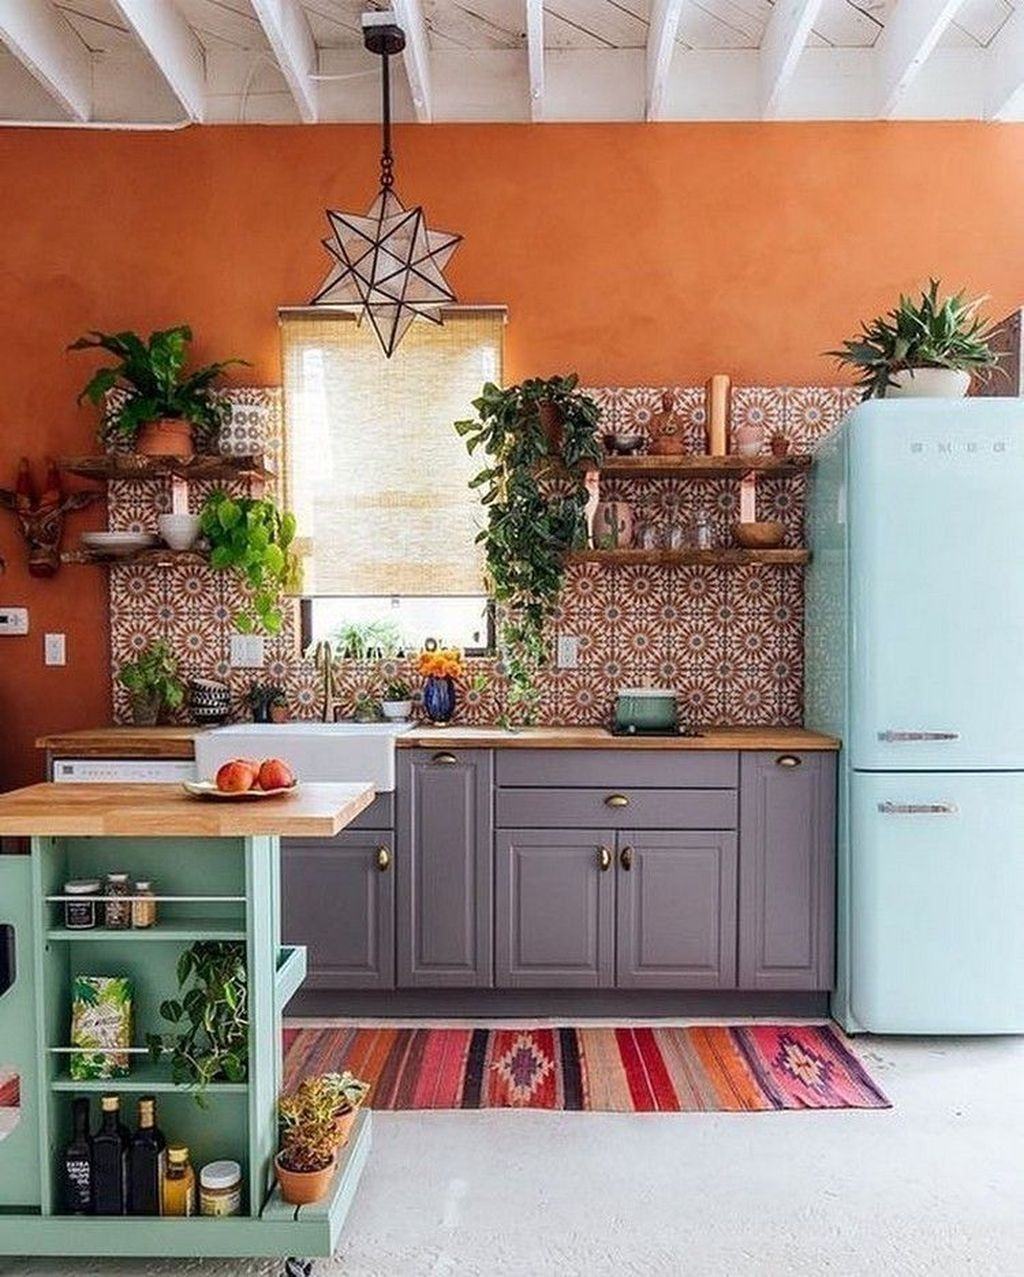 30 awesome bohemian kitchen ideas to inspire you in 2020 bohemian kitchen redo kitchen on boho chic home decor kitchen id=27873